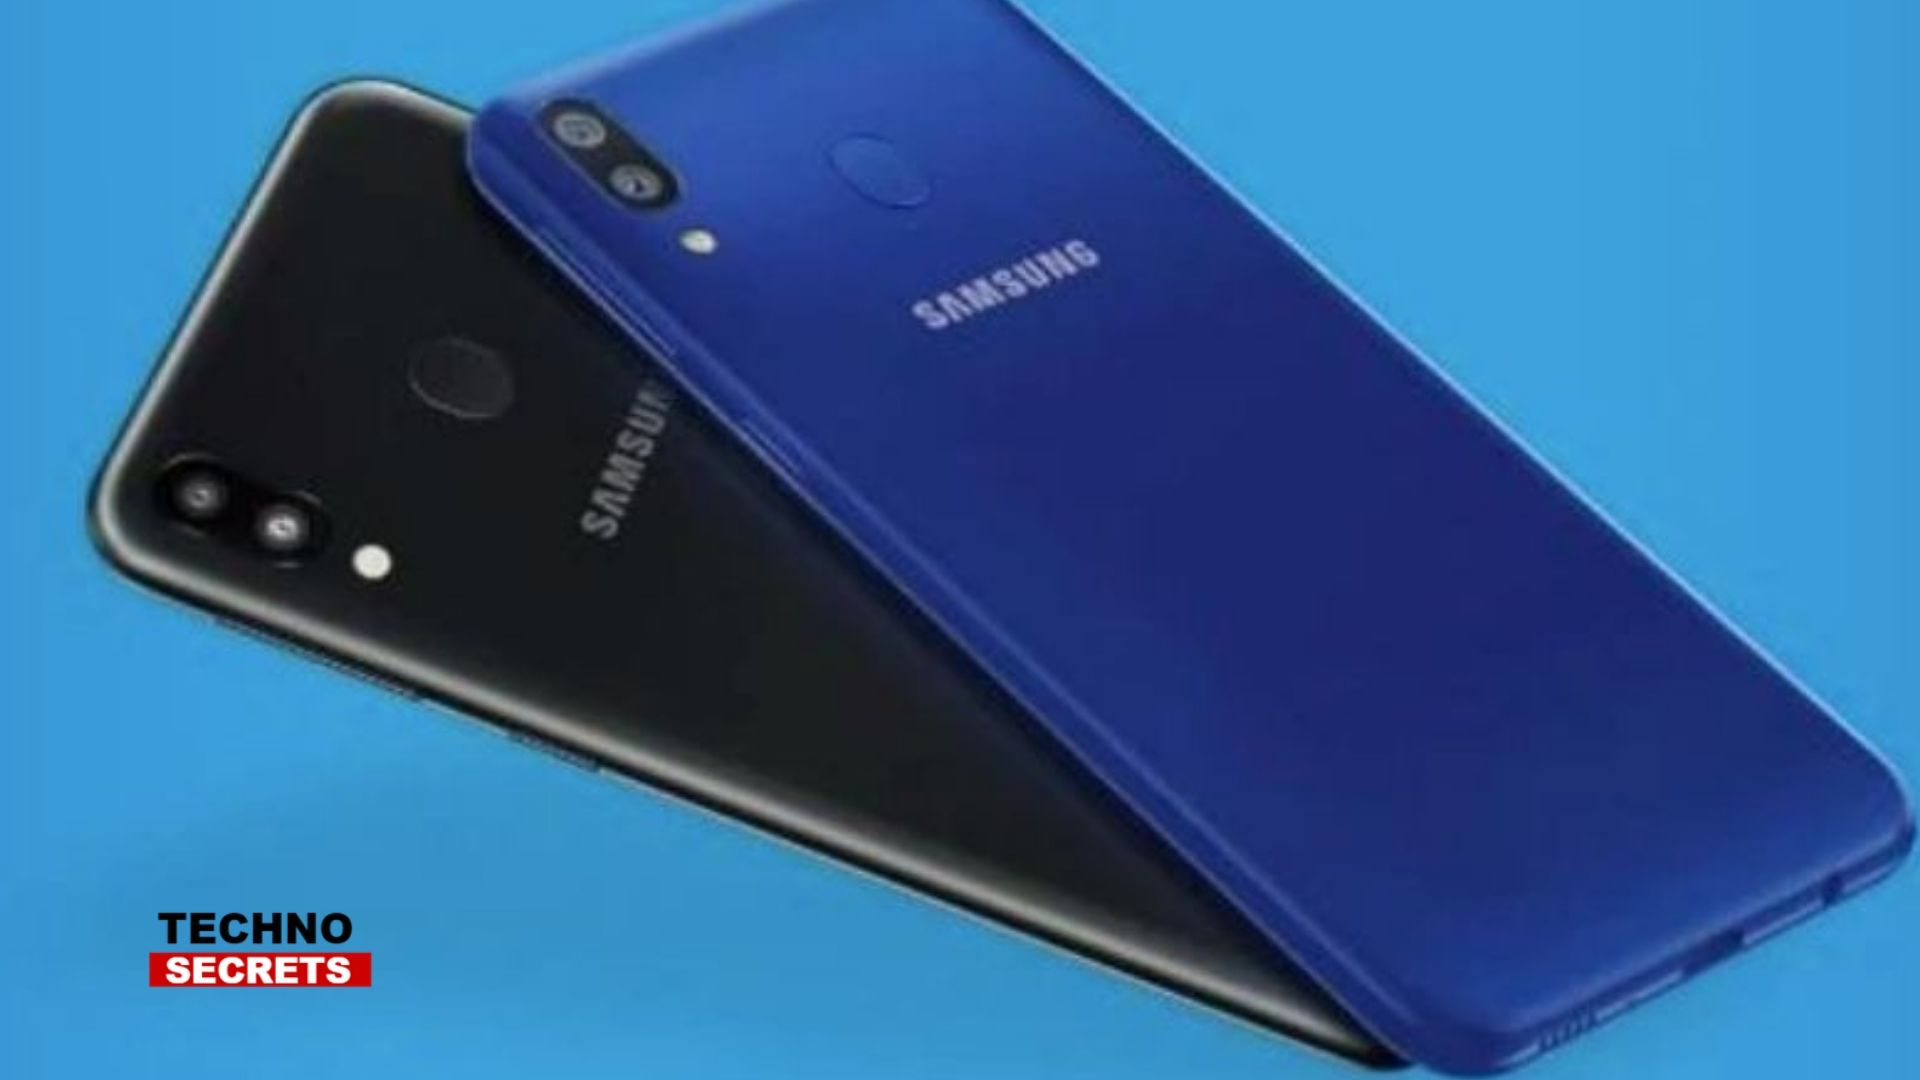 Samsung Galaxy M40 Specifications Leaked, Expected to Have 3,000 mAh Battery